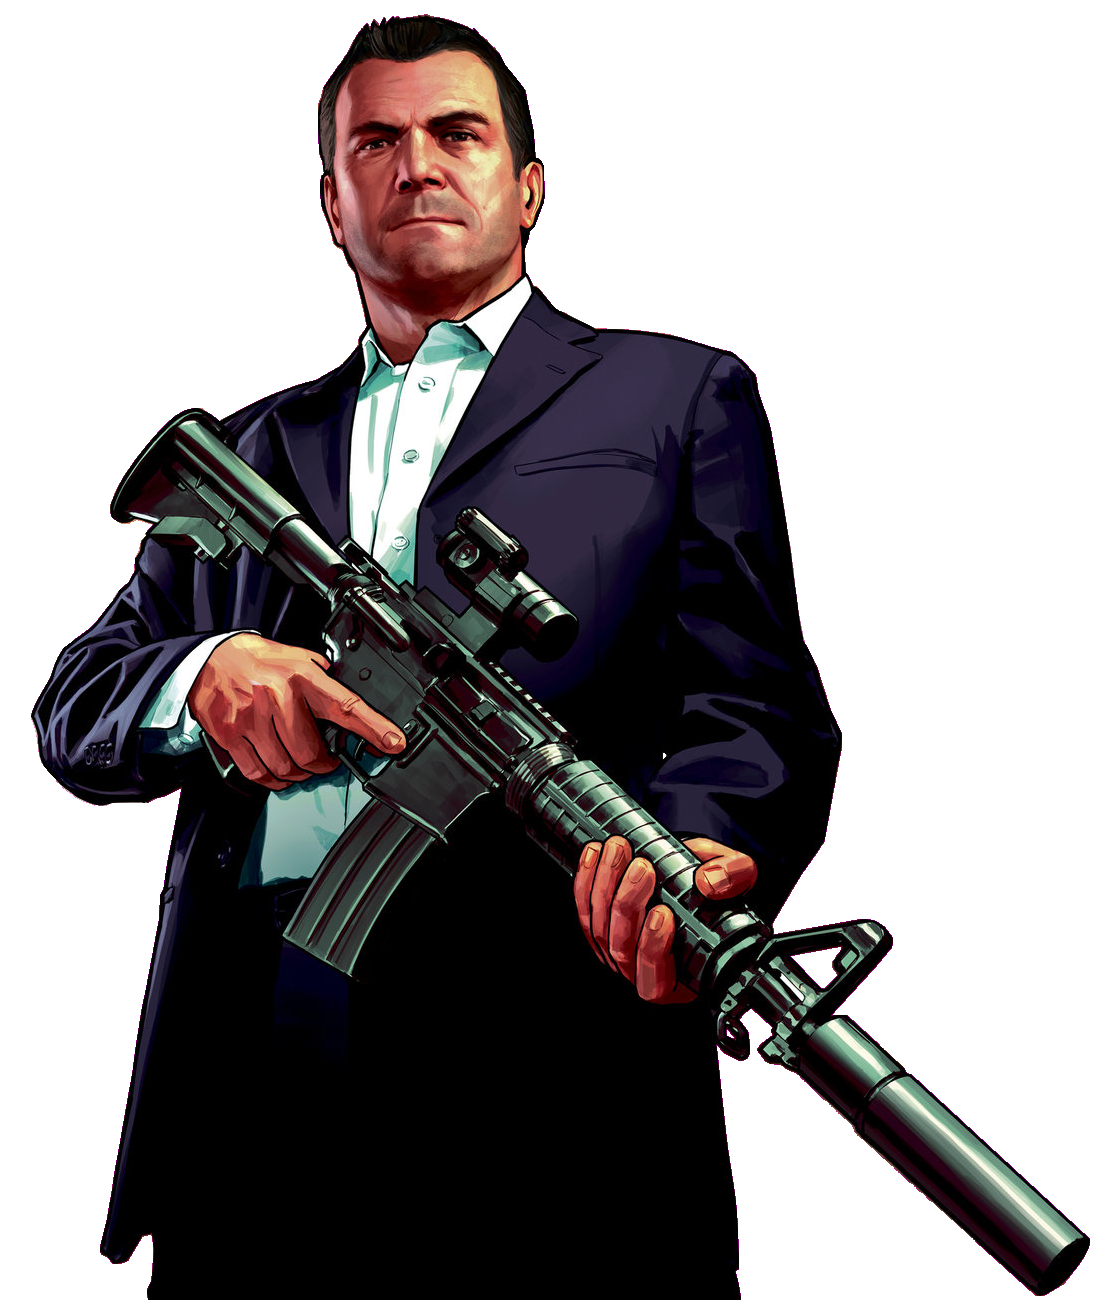 Covered clipart gta v Render Gta Clip Gta5 on